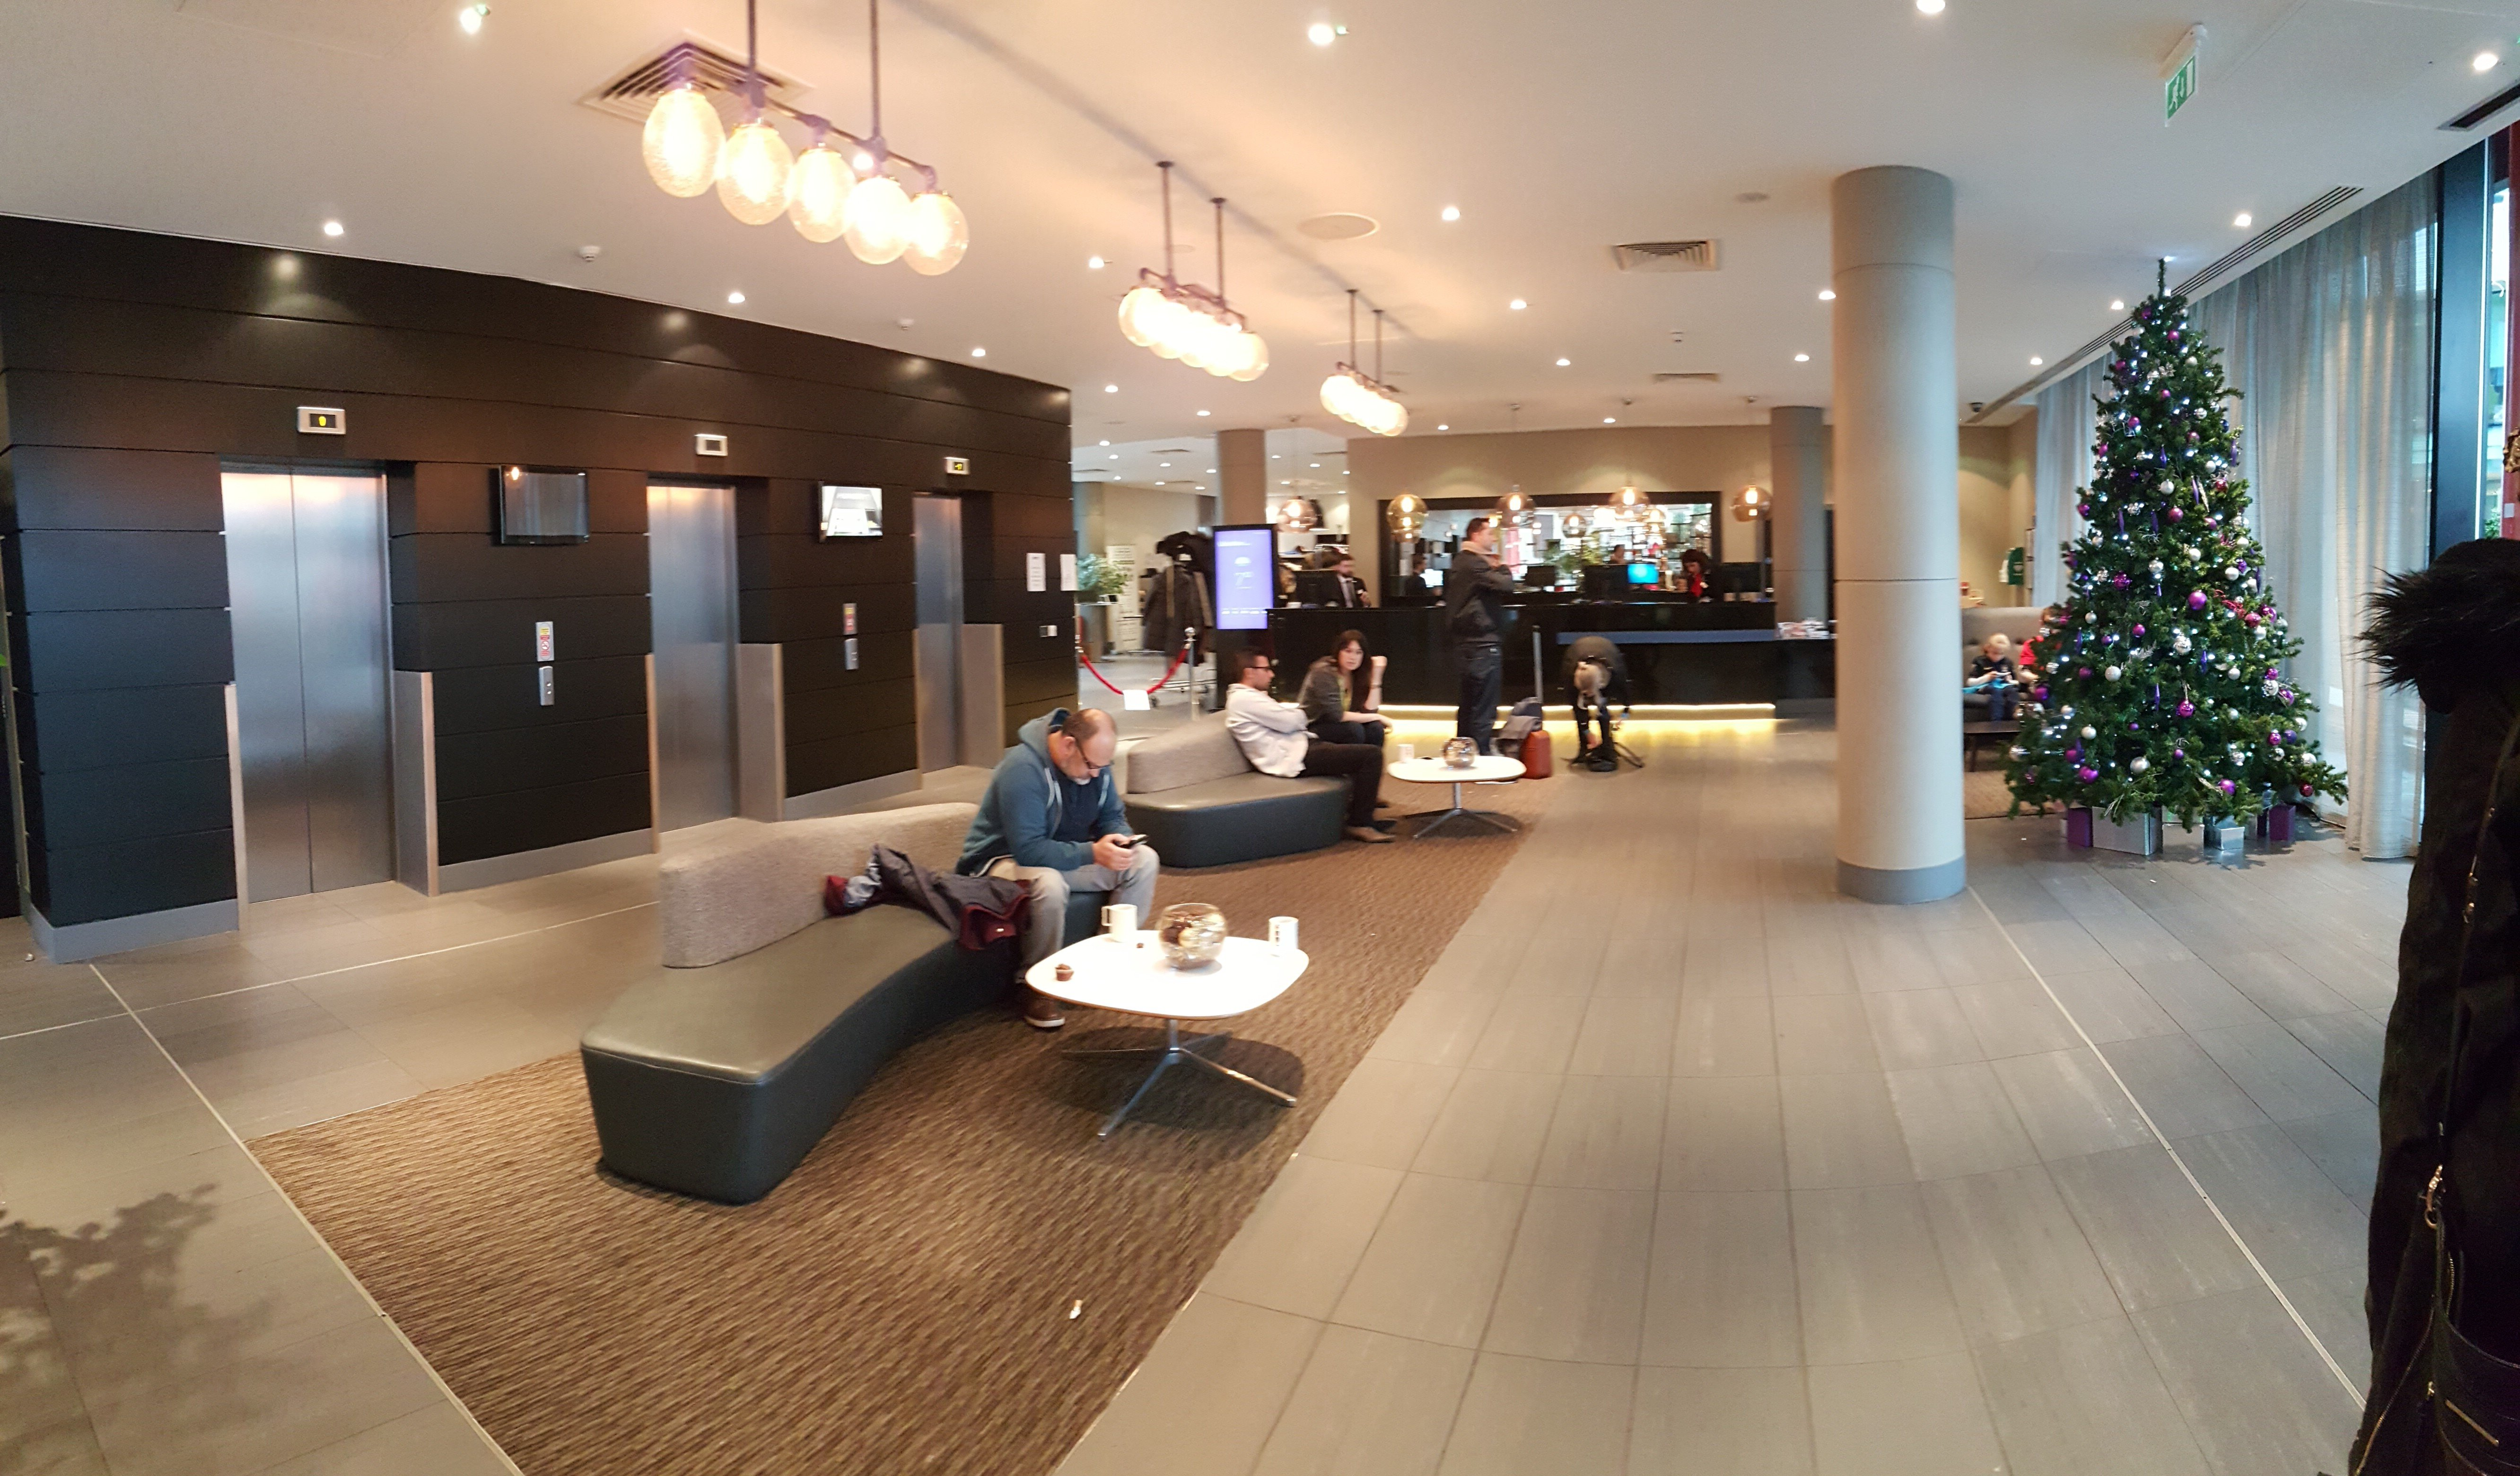 Reception / Lobby of the Park Inn by Radisson Manchester City Centre